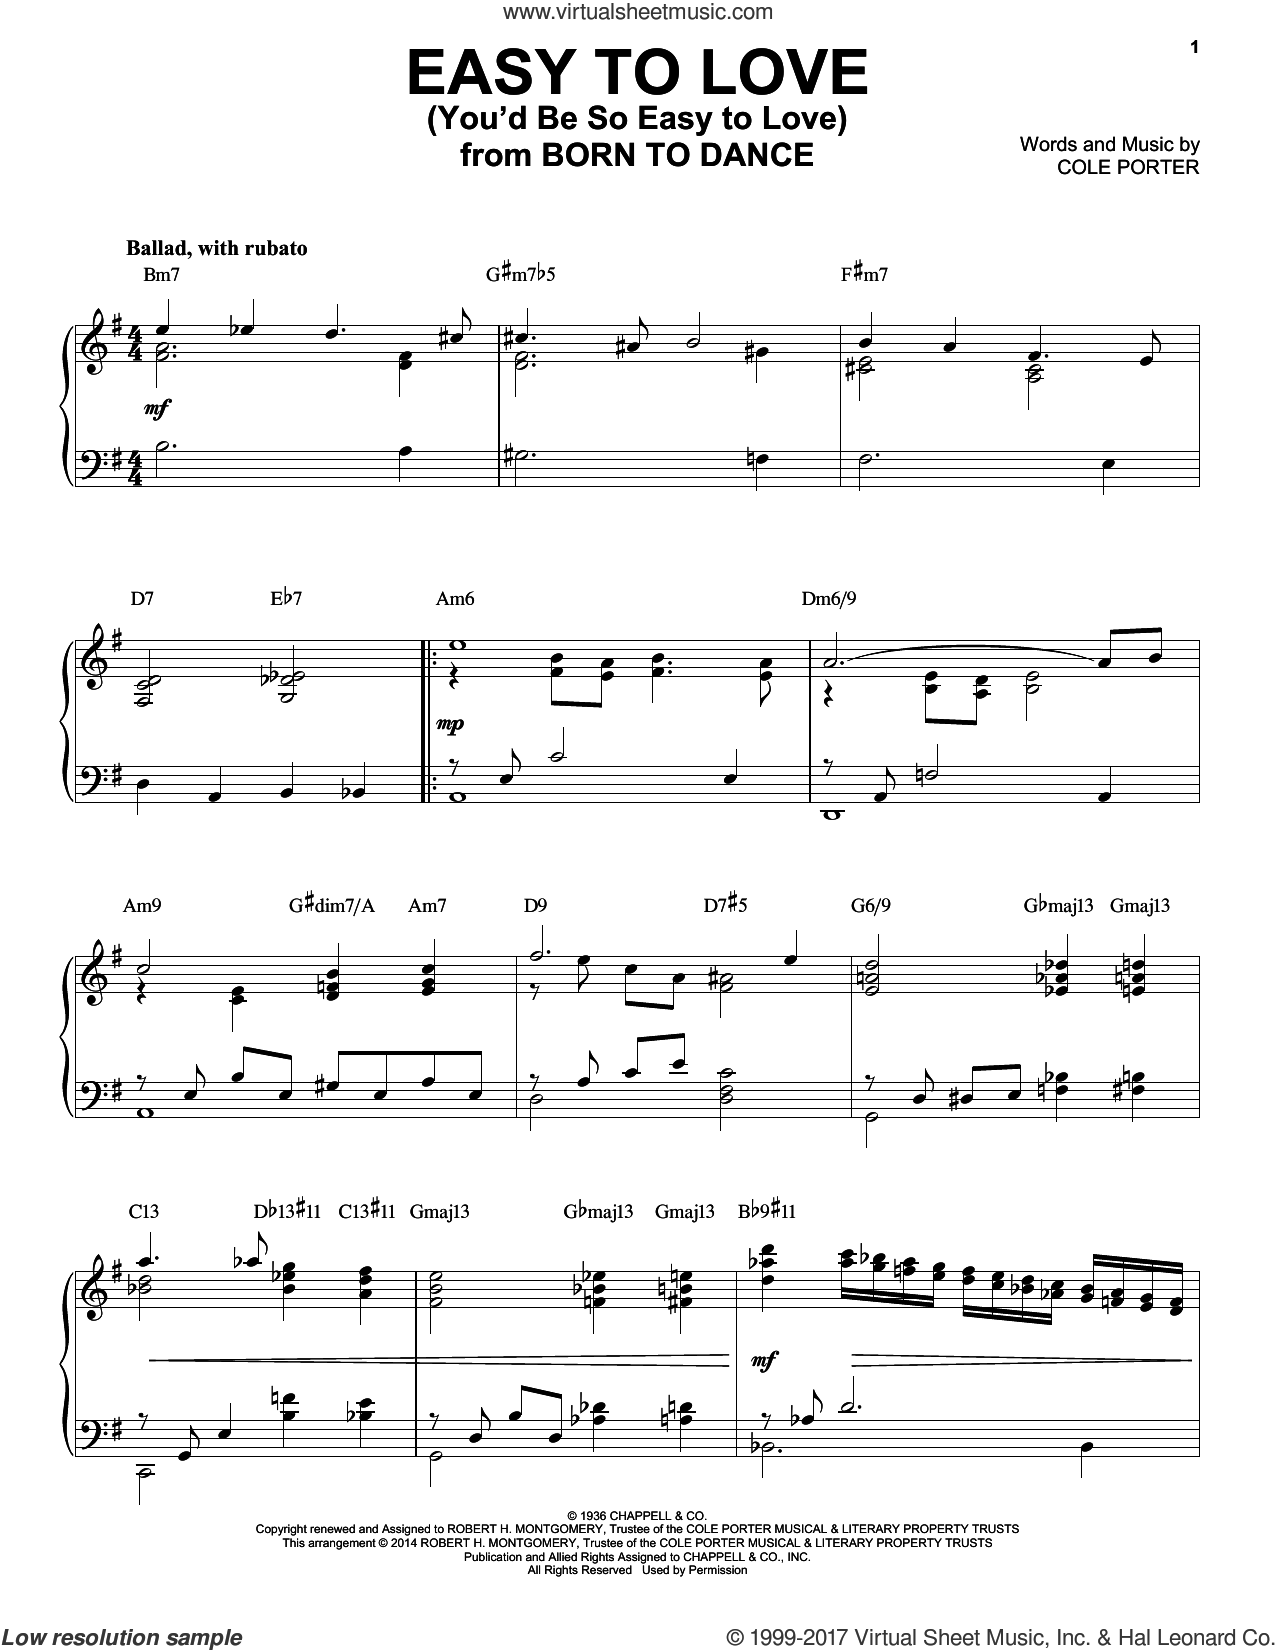 Easy To Love (You'd Be So Easy To Love) sheet music for piano solo by Cole Porter, intermediate skill level